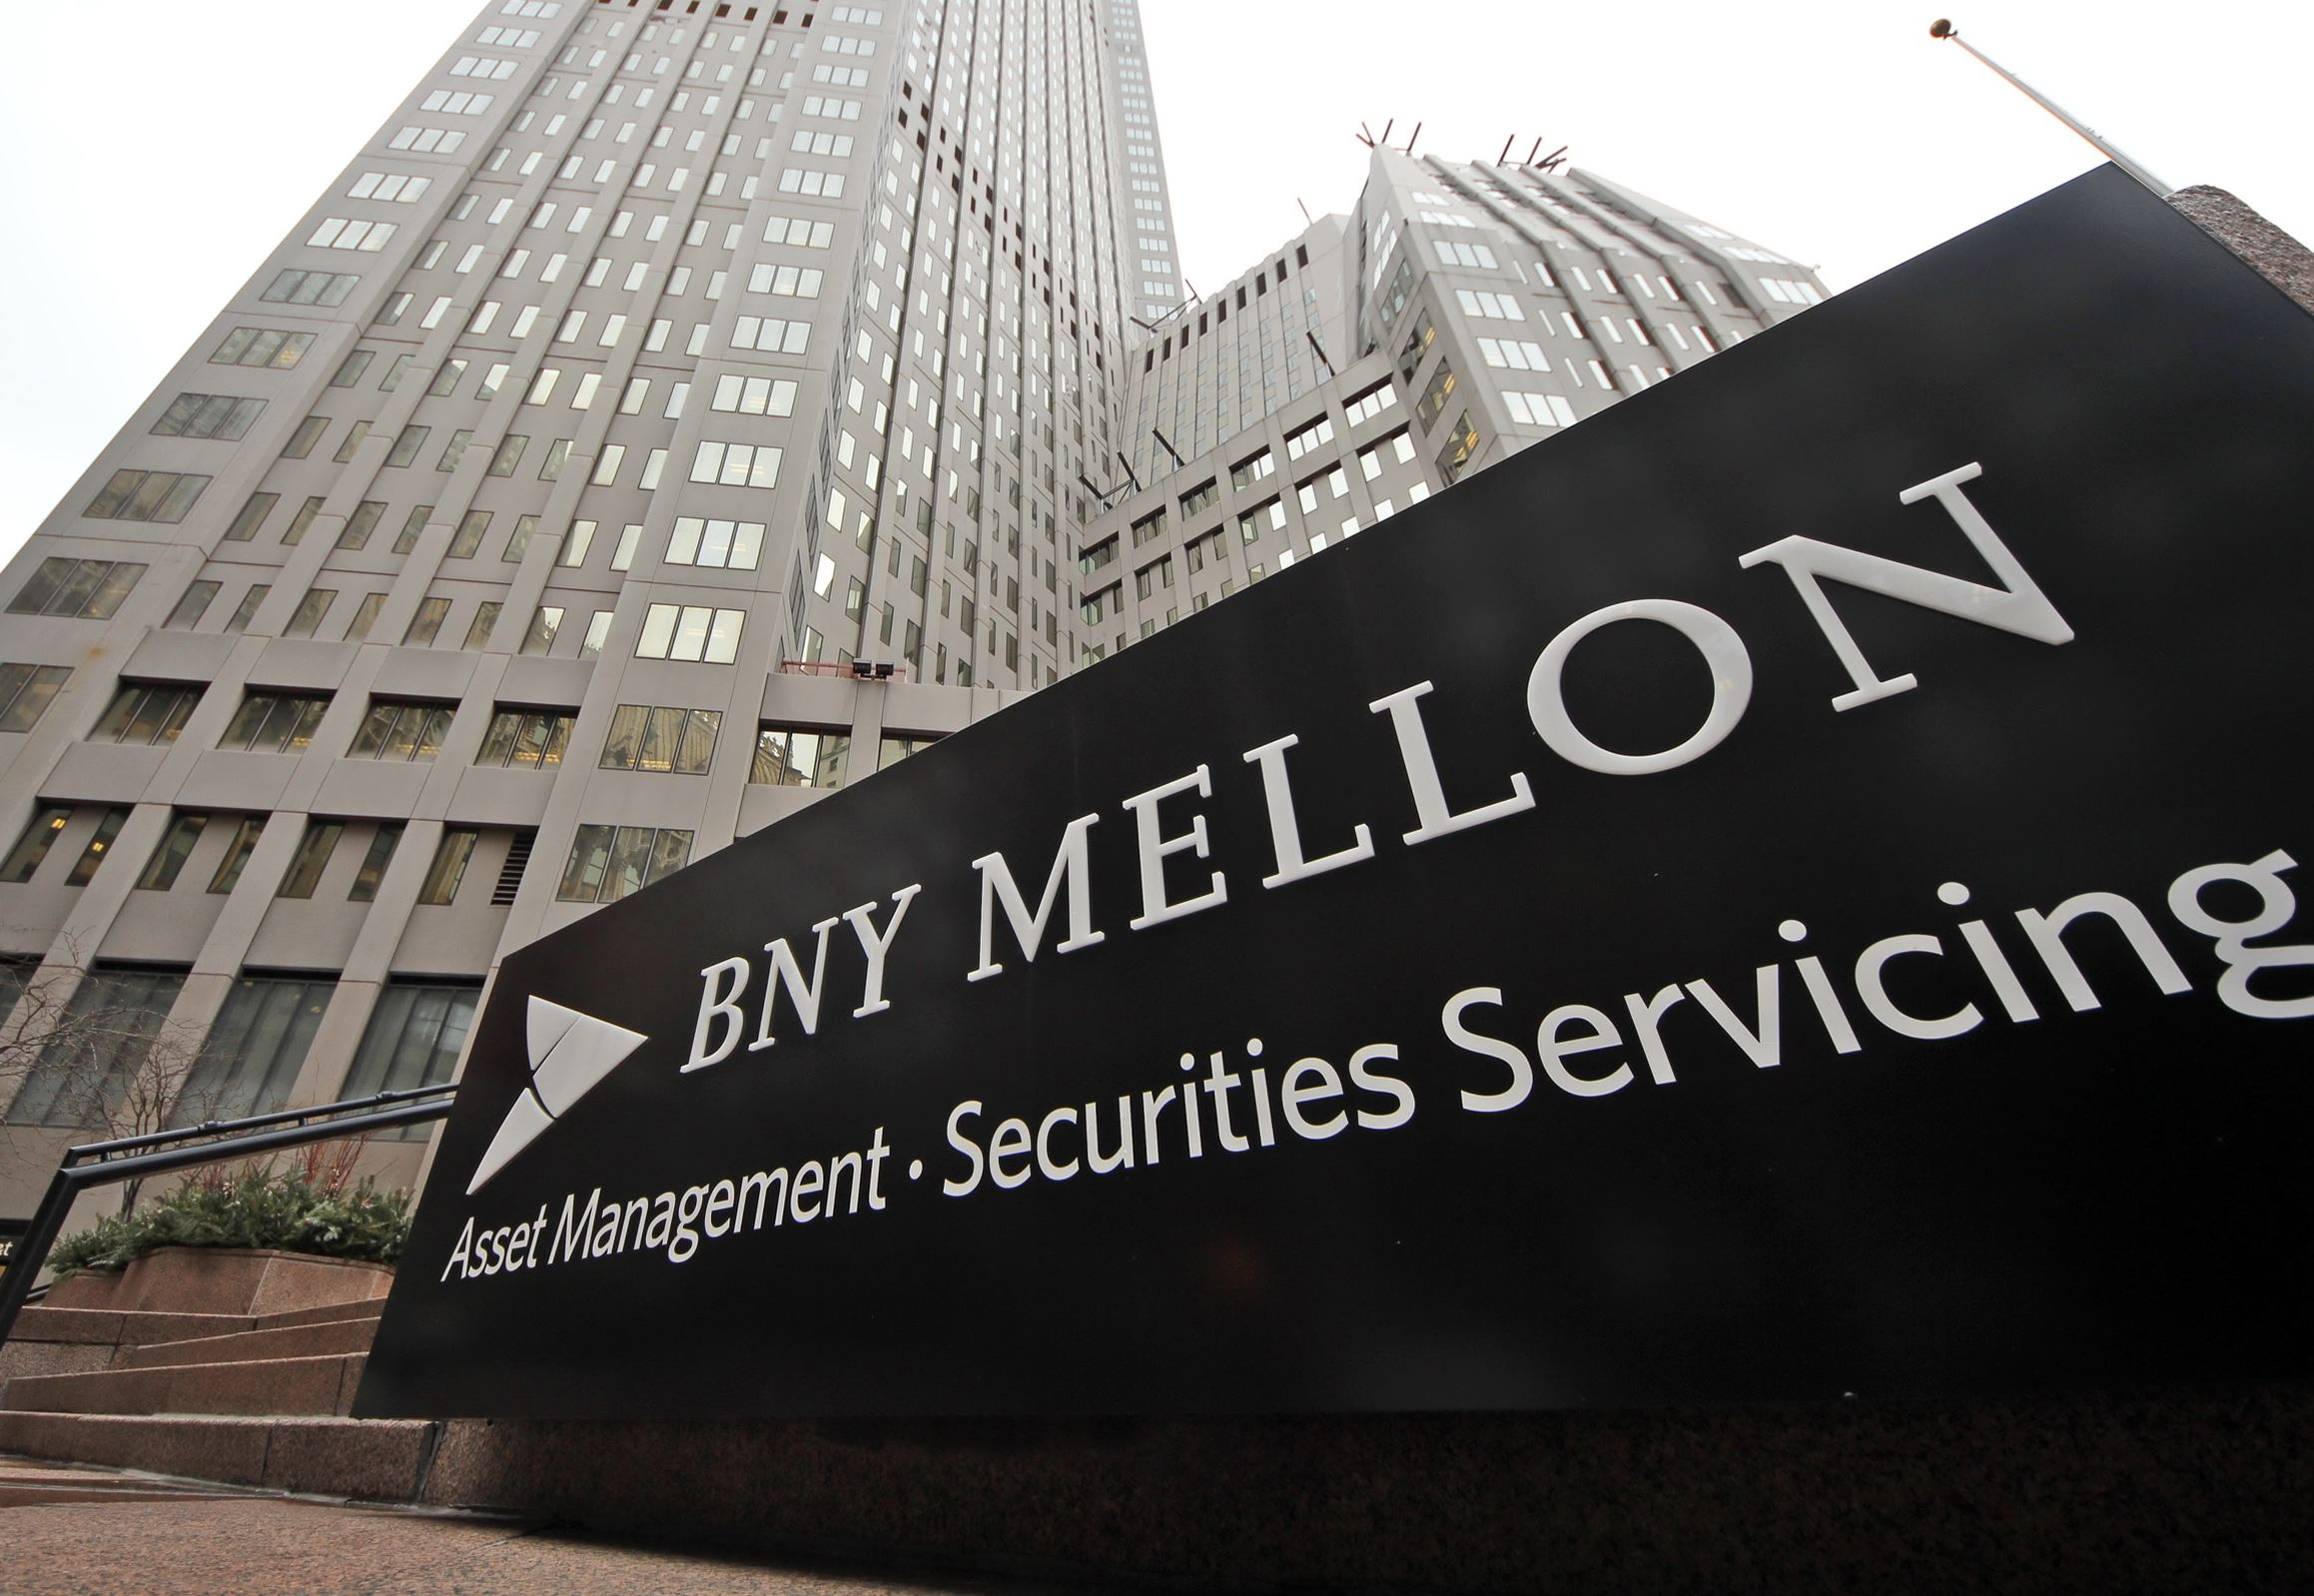 BNY Mellon hits record assets under custody in Q1